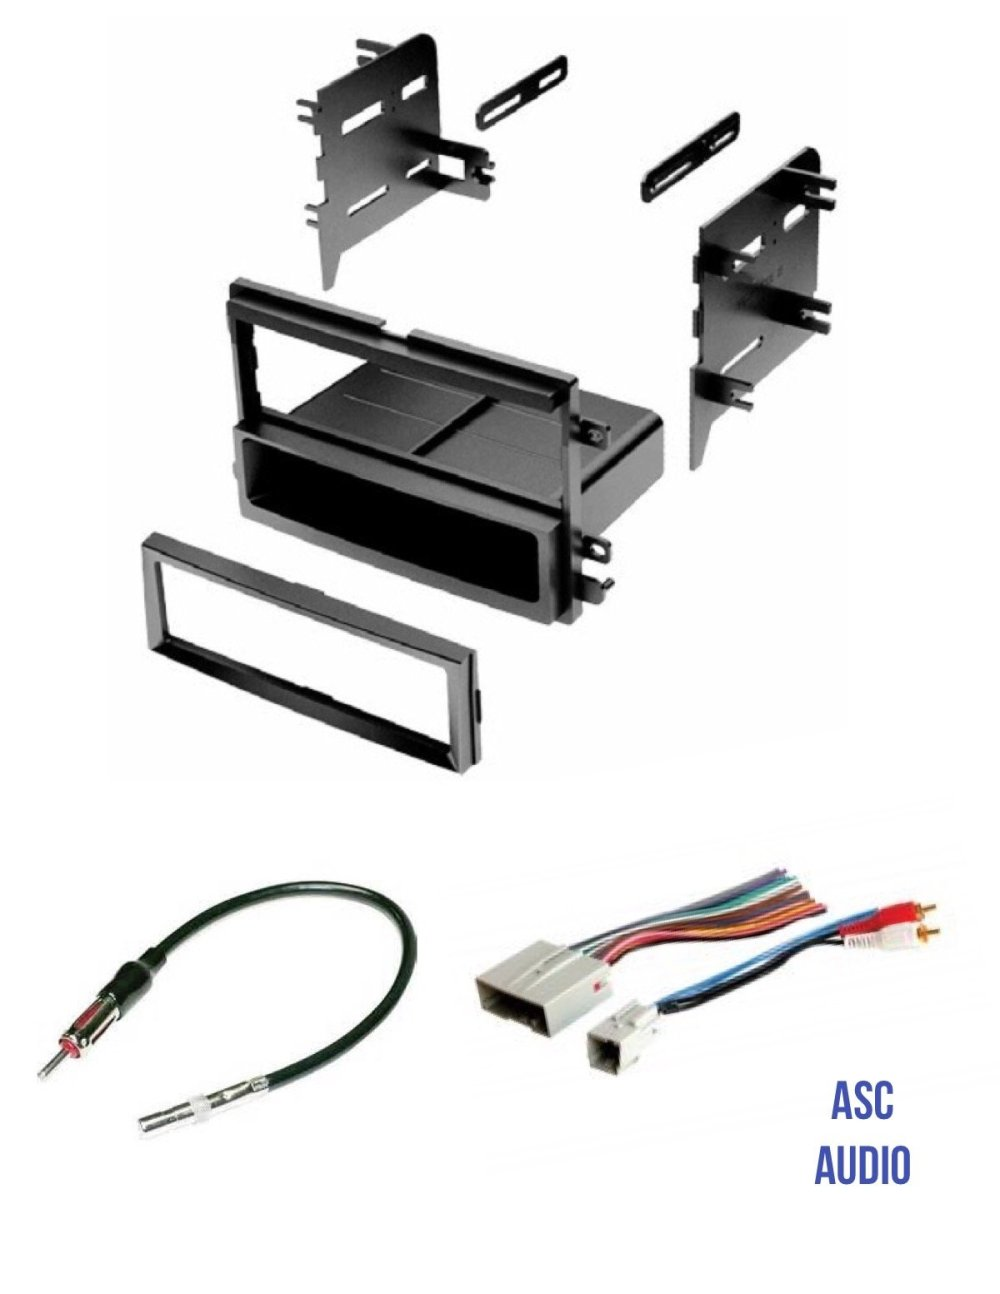 medium resolution of get quotations asc audio car stereo radio install dash kit wire harness and antenna adapter to